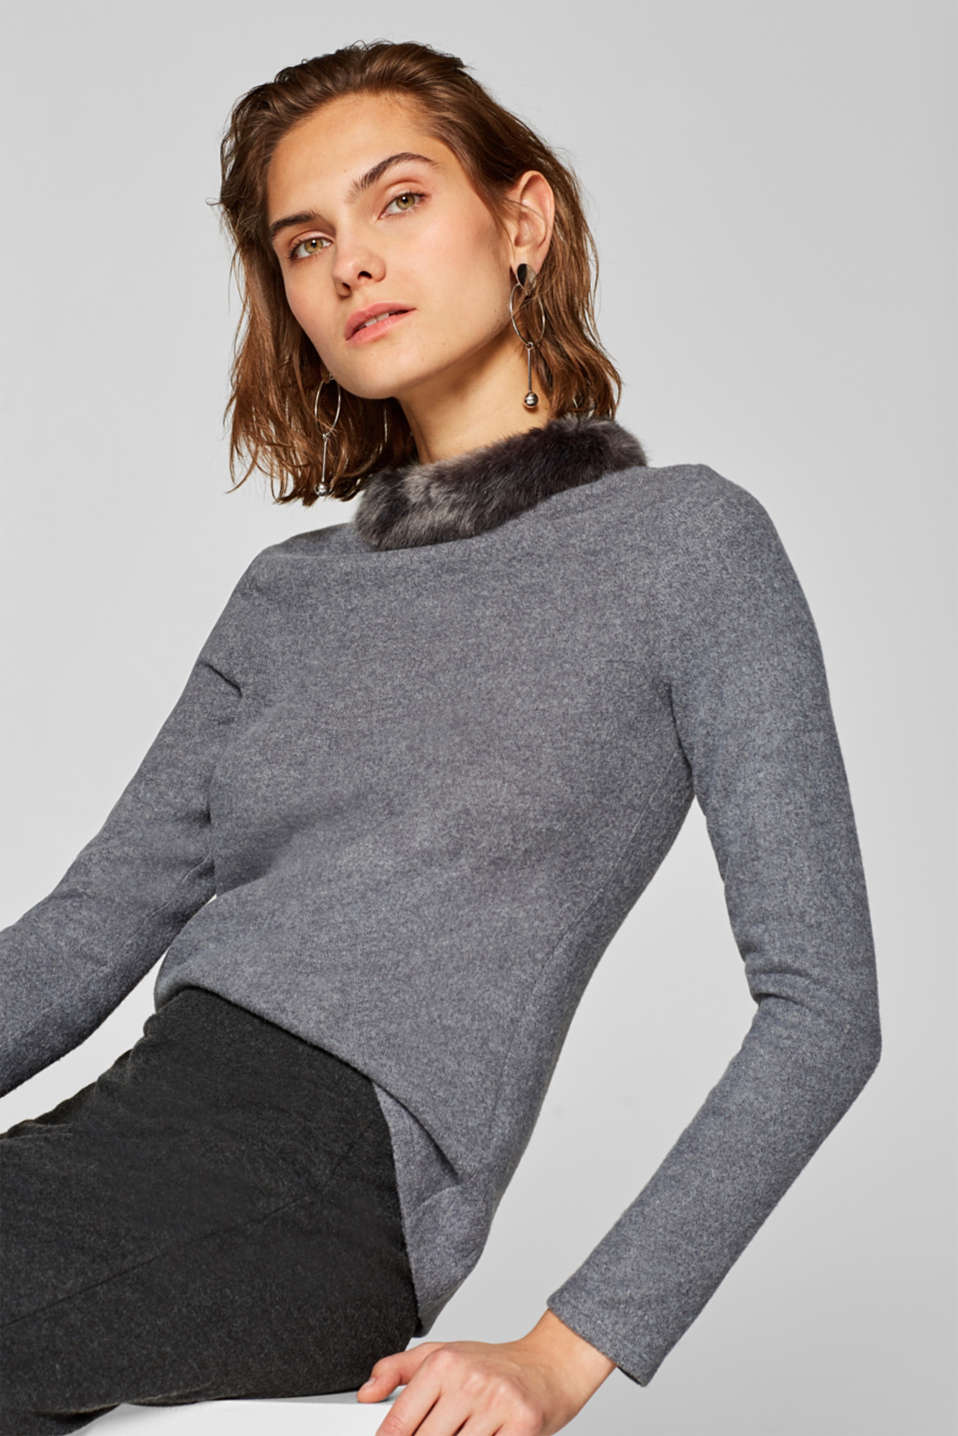 Esprit - Brushed long sleeve top with fake fur collar